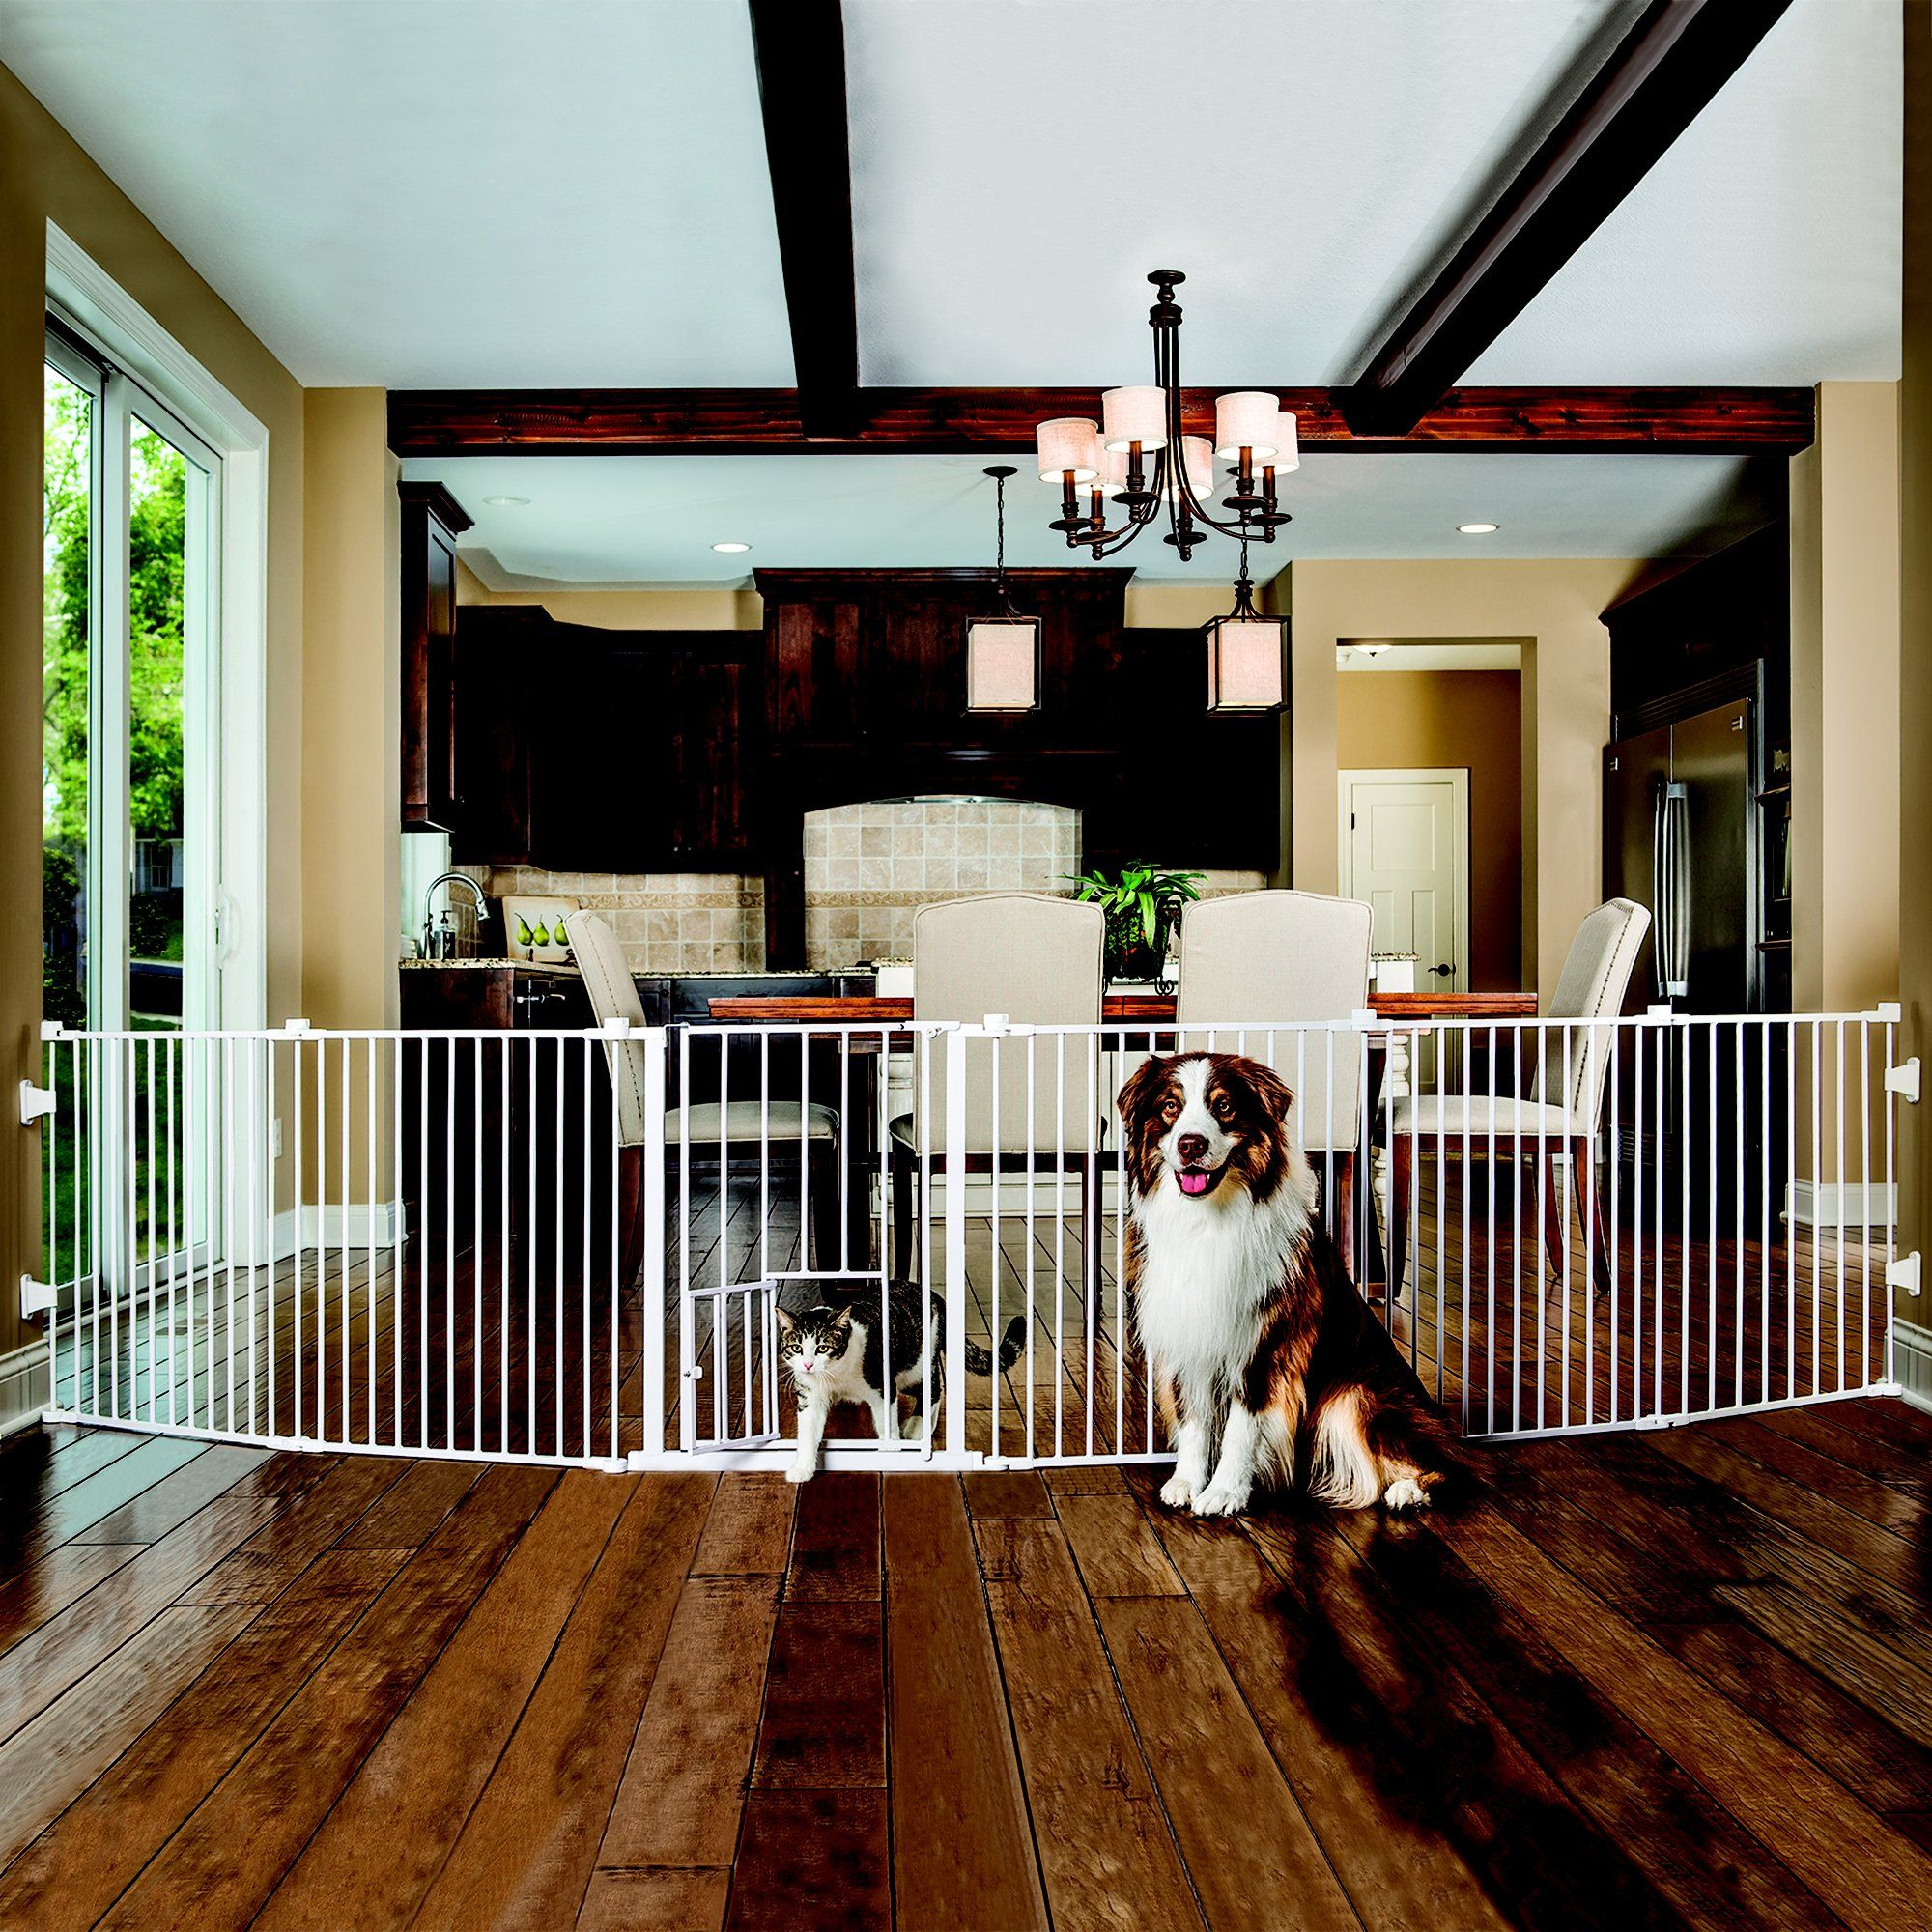 Carlson 2 In 1 Super Pet Gate And Pet Yard Petco Pet Gate Dog